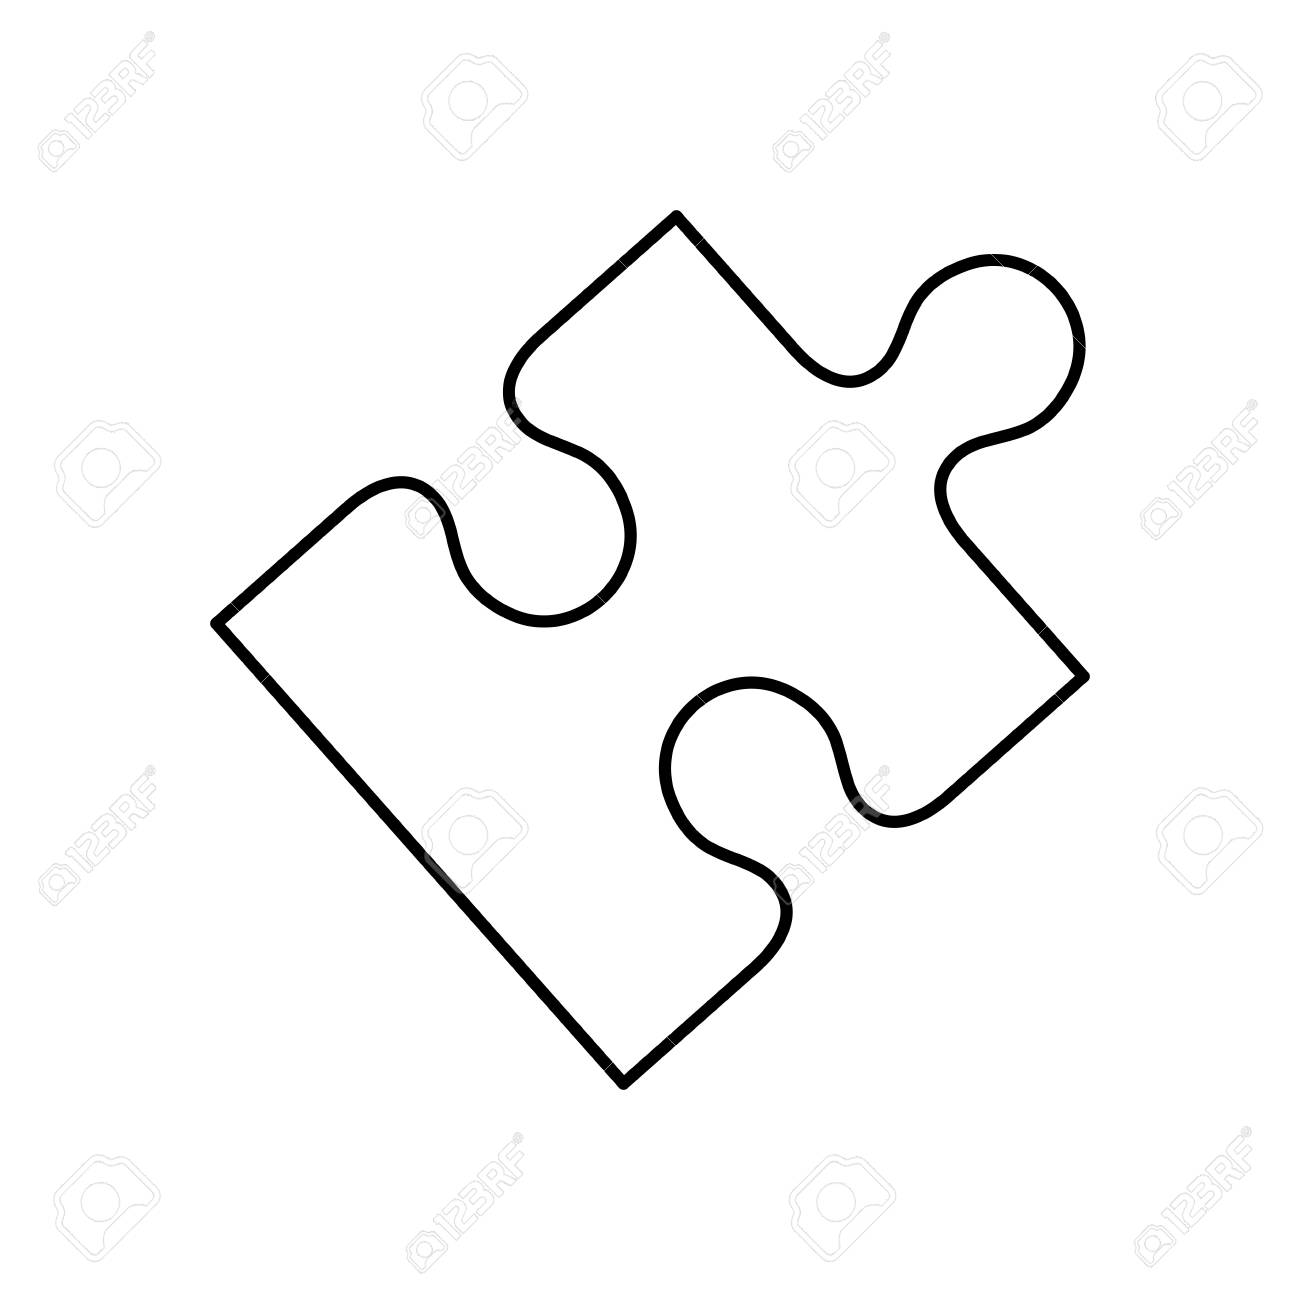 puzzle pieces concept icon vector illustration graphic design